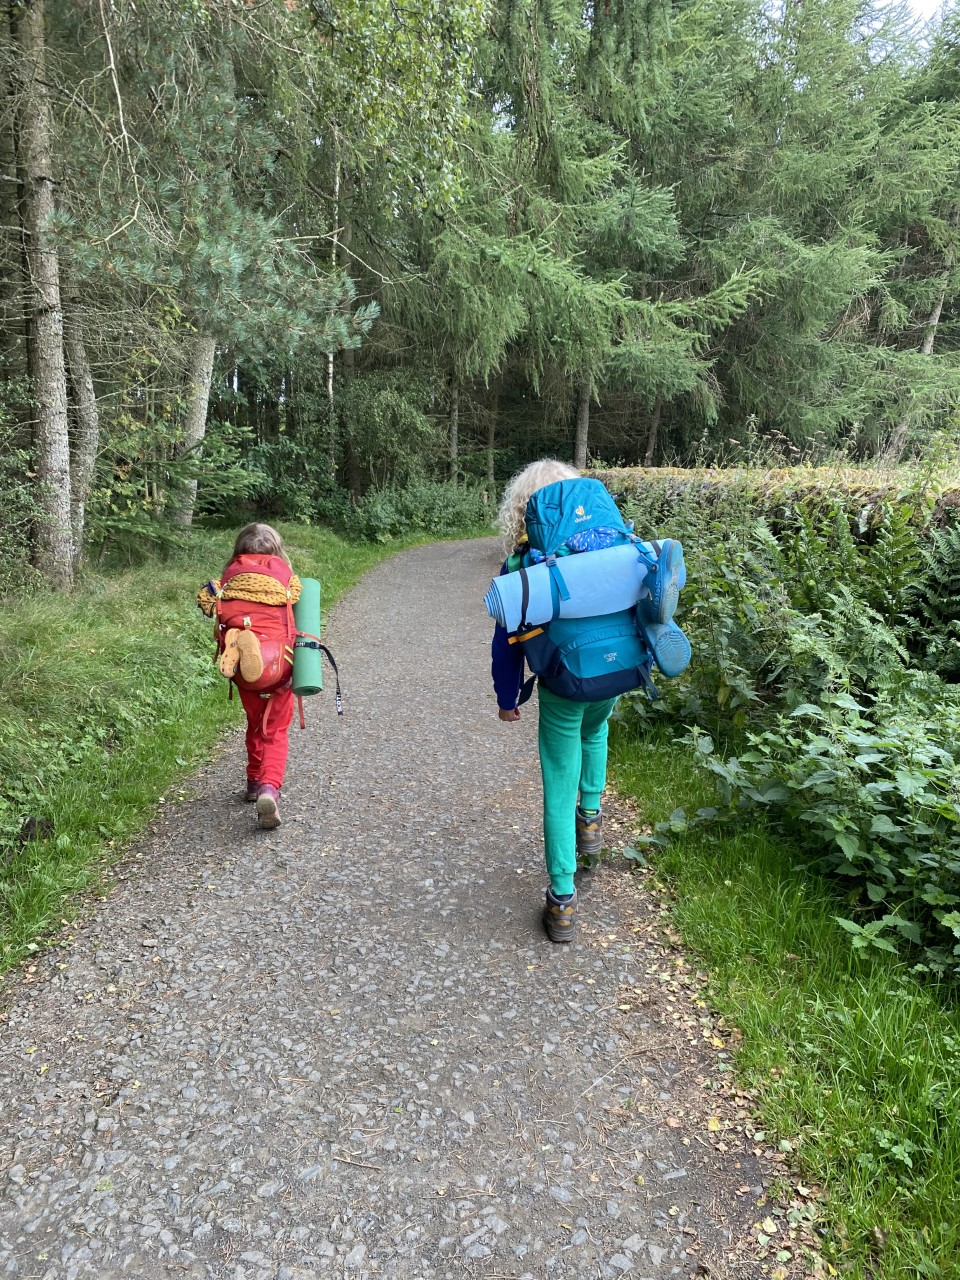 children with rucksacks packed for camping